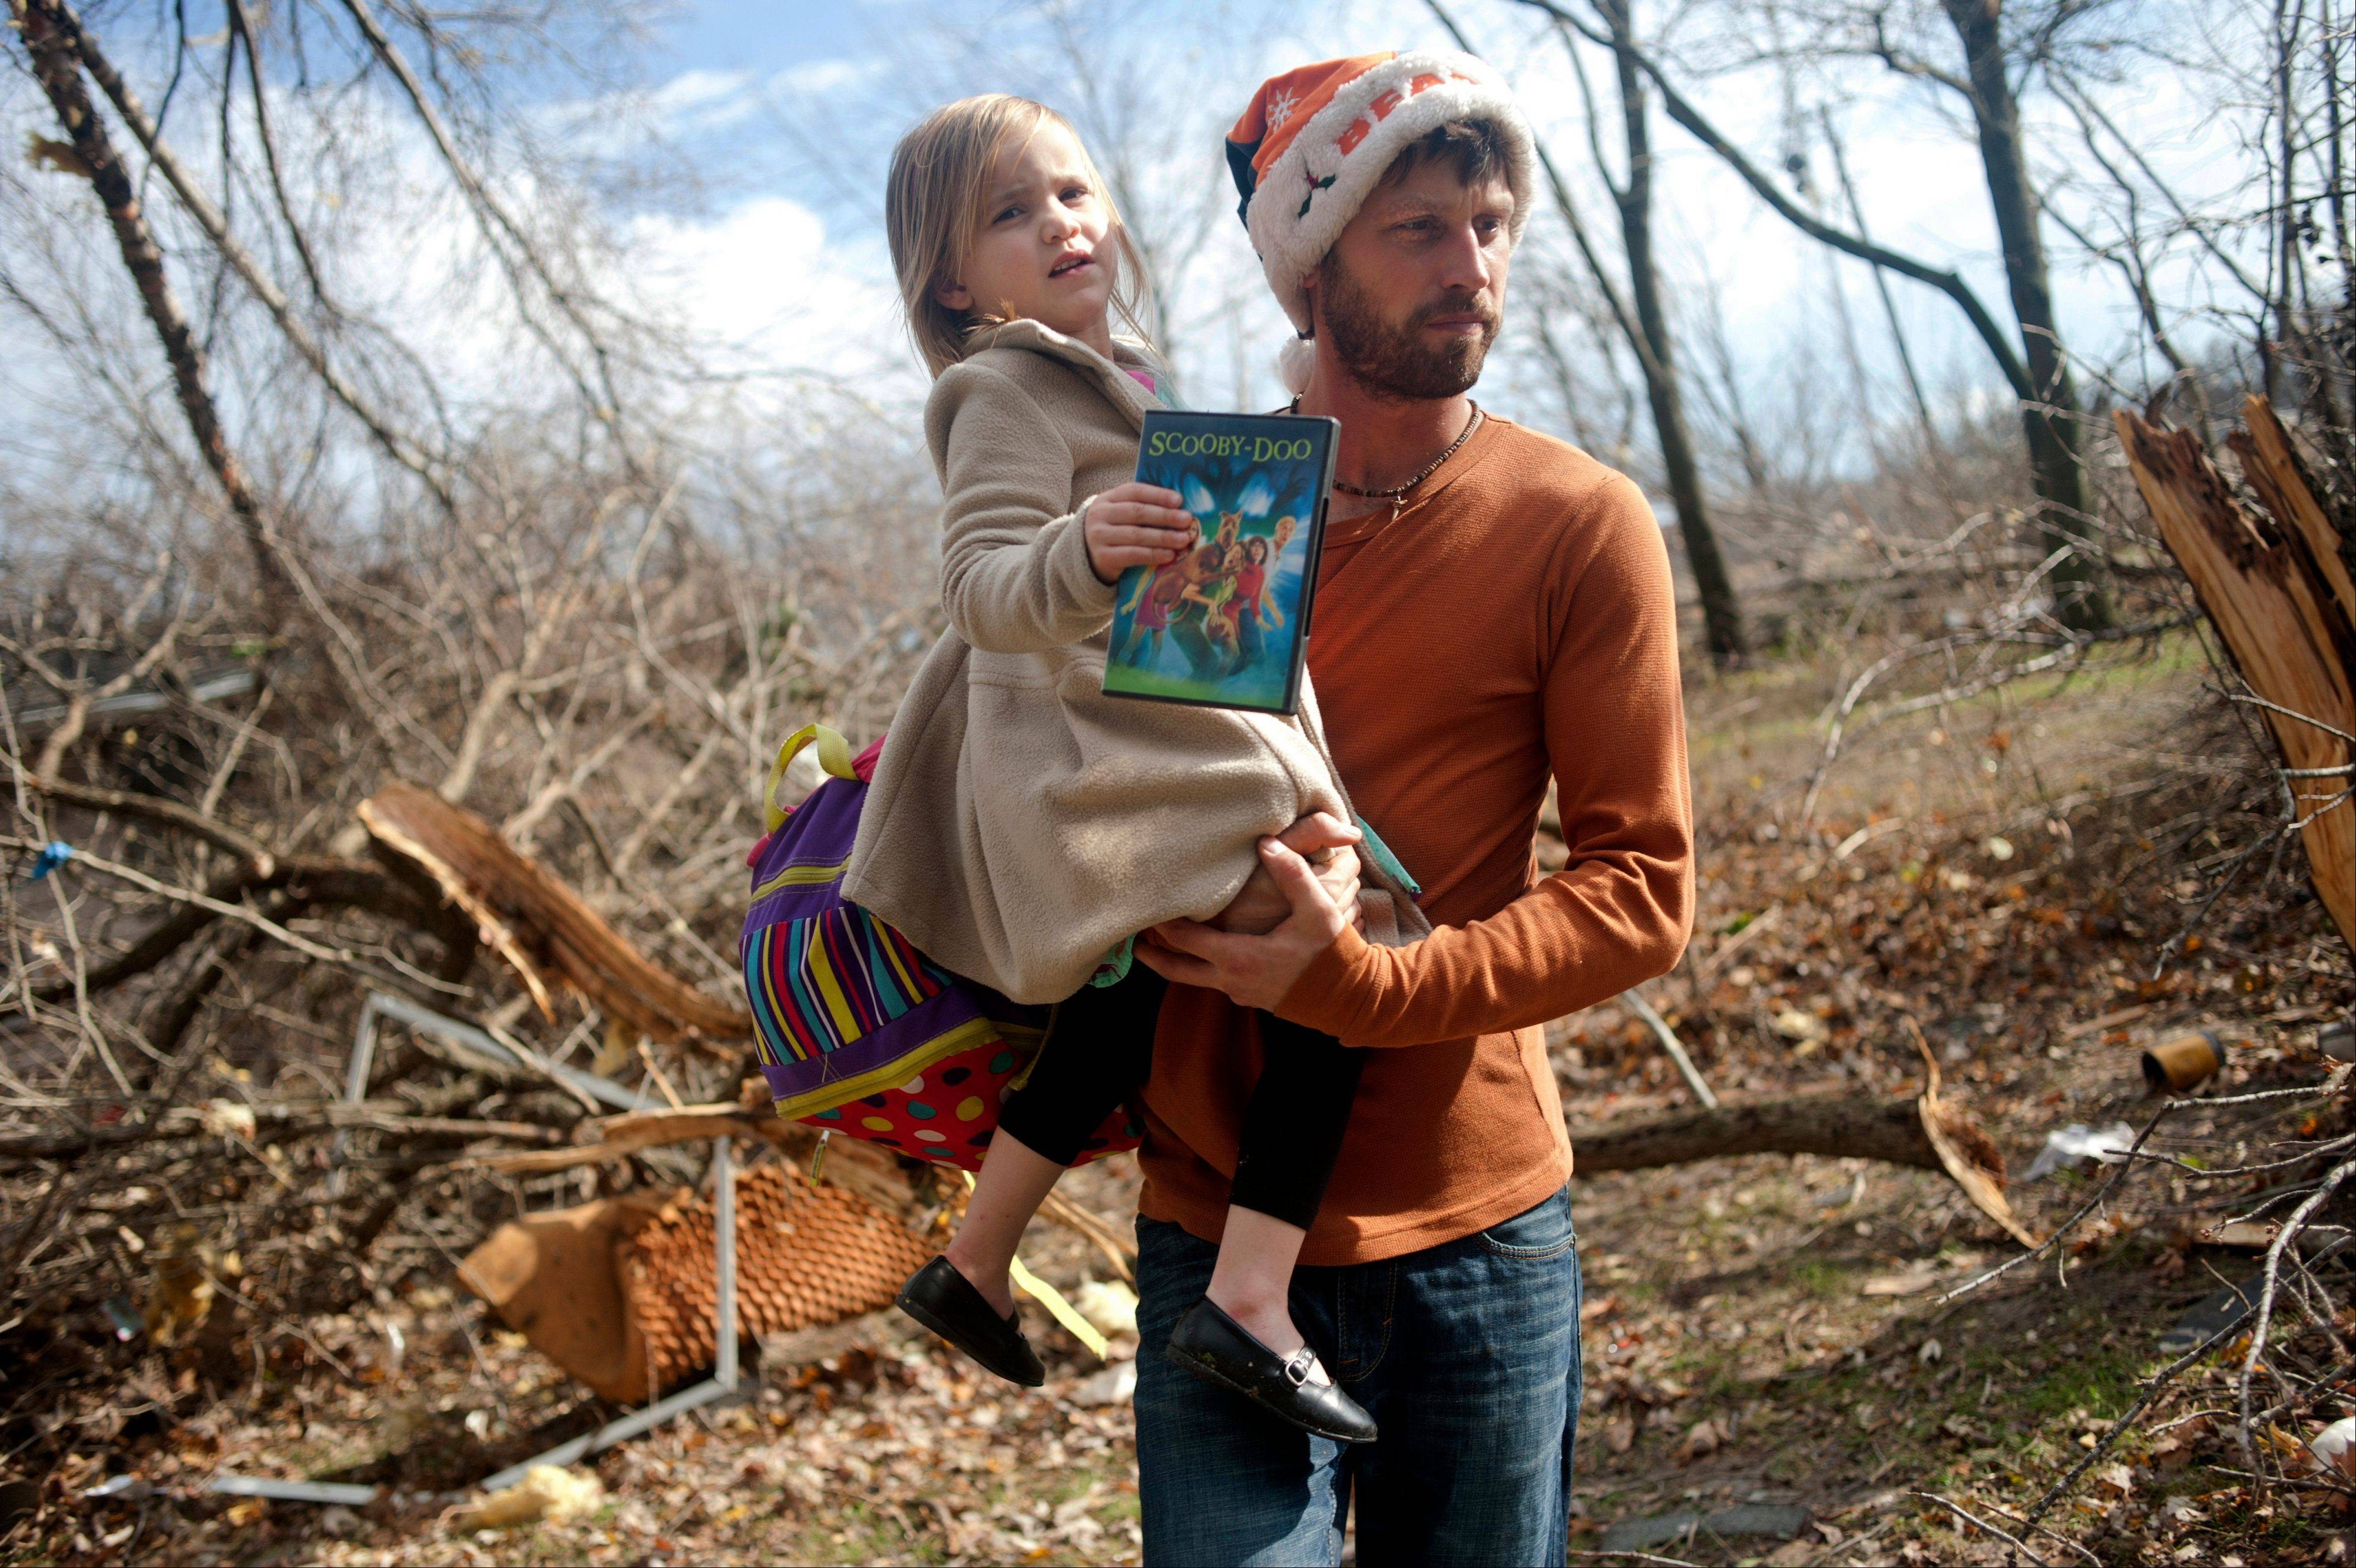 East Peoria resident Billy Vestal evacuates with his daughter, Lillian Vestal, 3, after a tornado damaged the area near Chestnut Road in East Peoria, Il., Sunday, Nov. 17, 2013. Intense thunderstorms and tornadoes swept across the Midwest on Sunday, causing extensive damage in several central Illinois communities while sending people to their basements for shelter